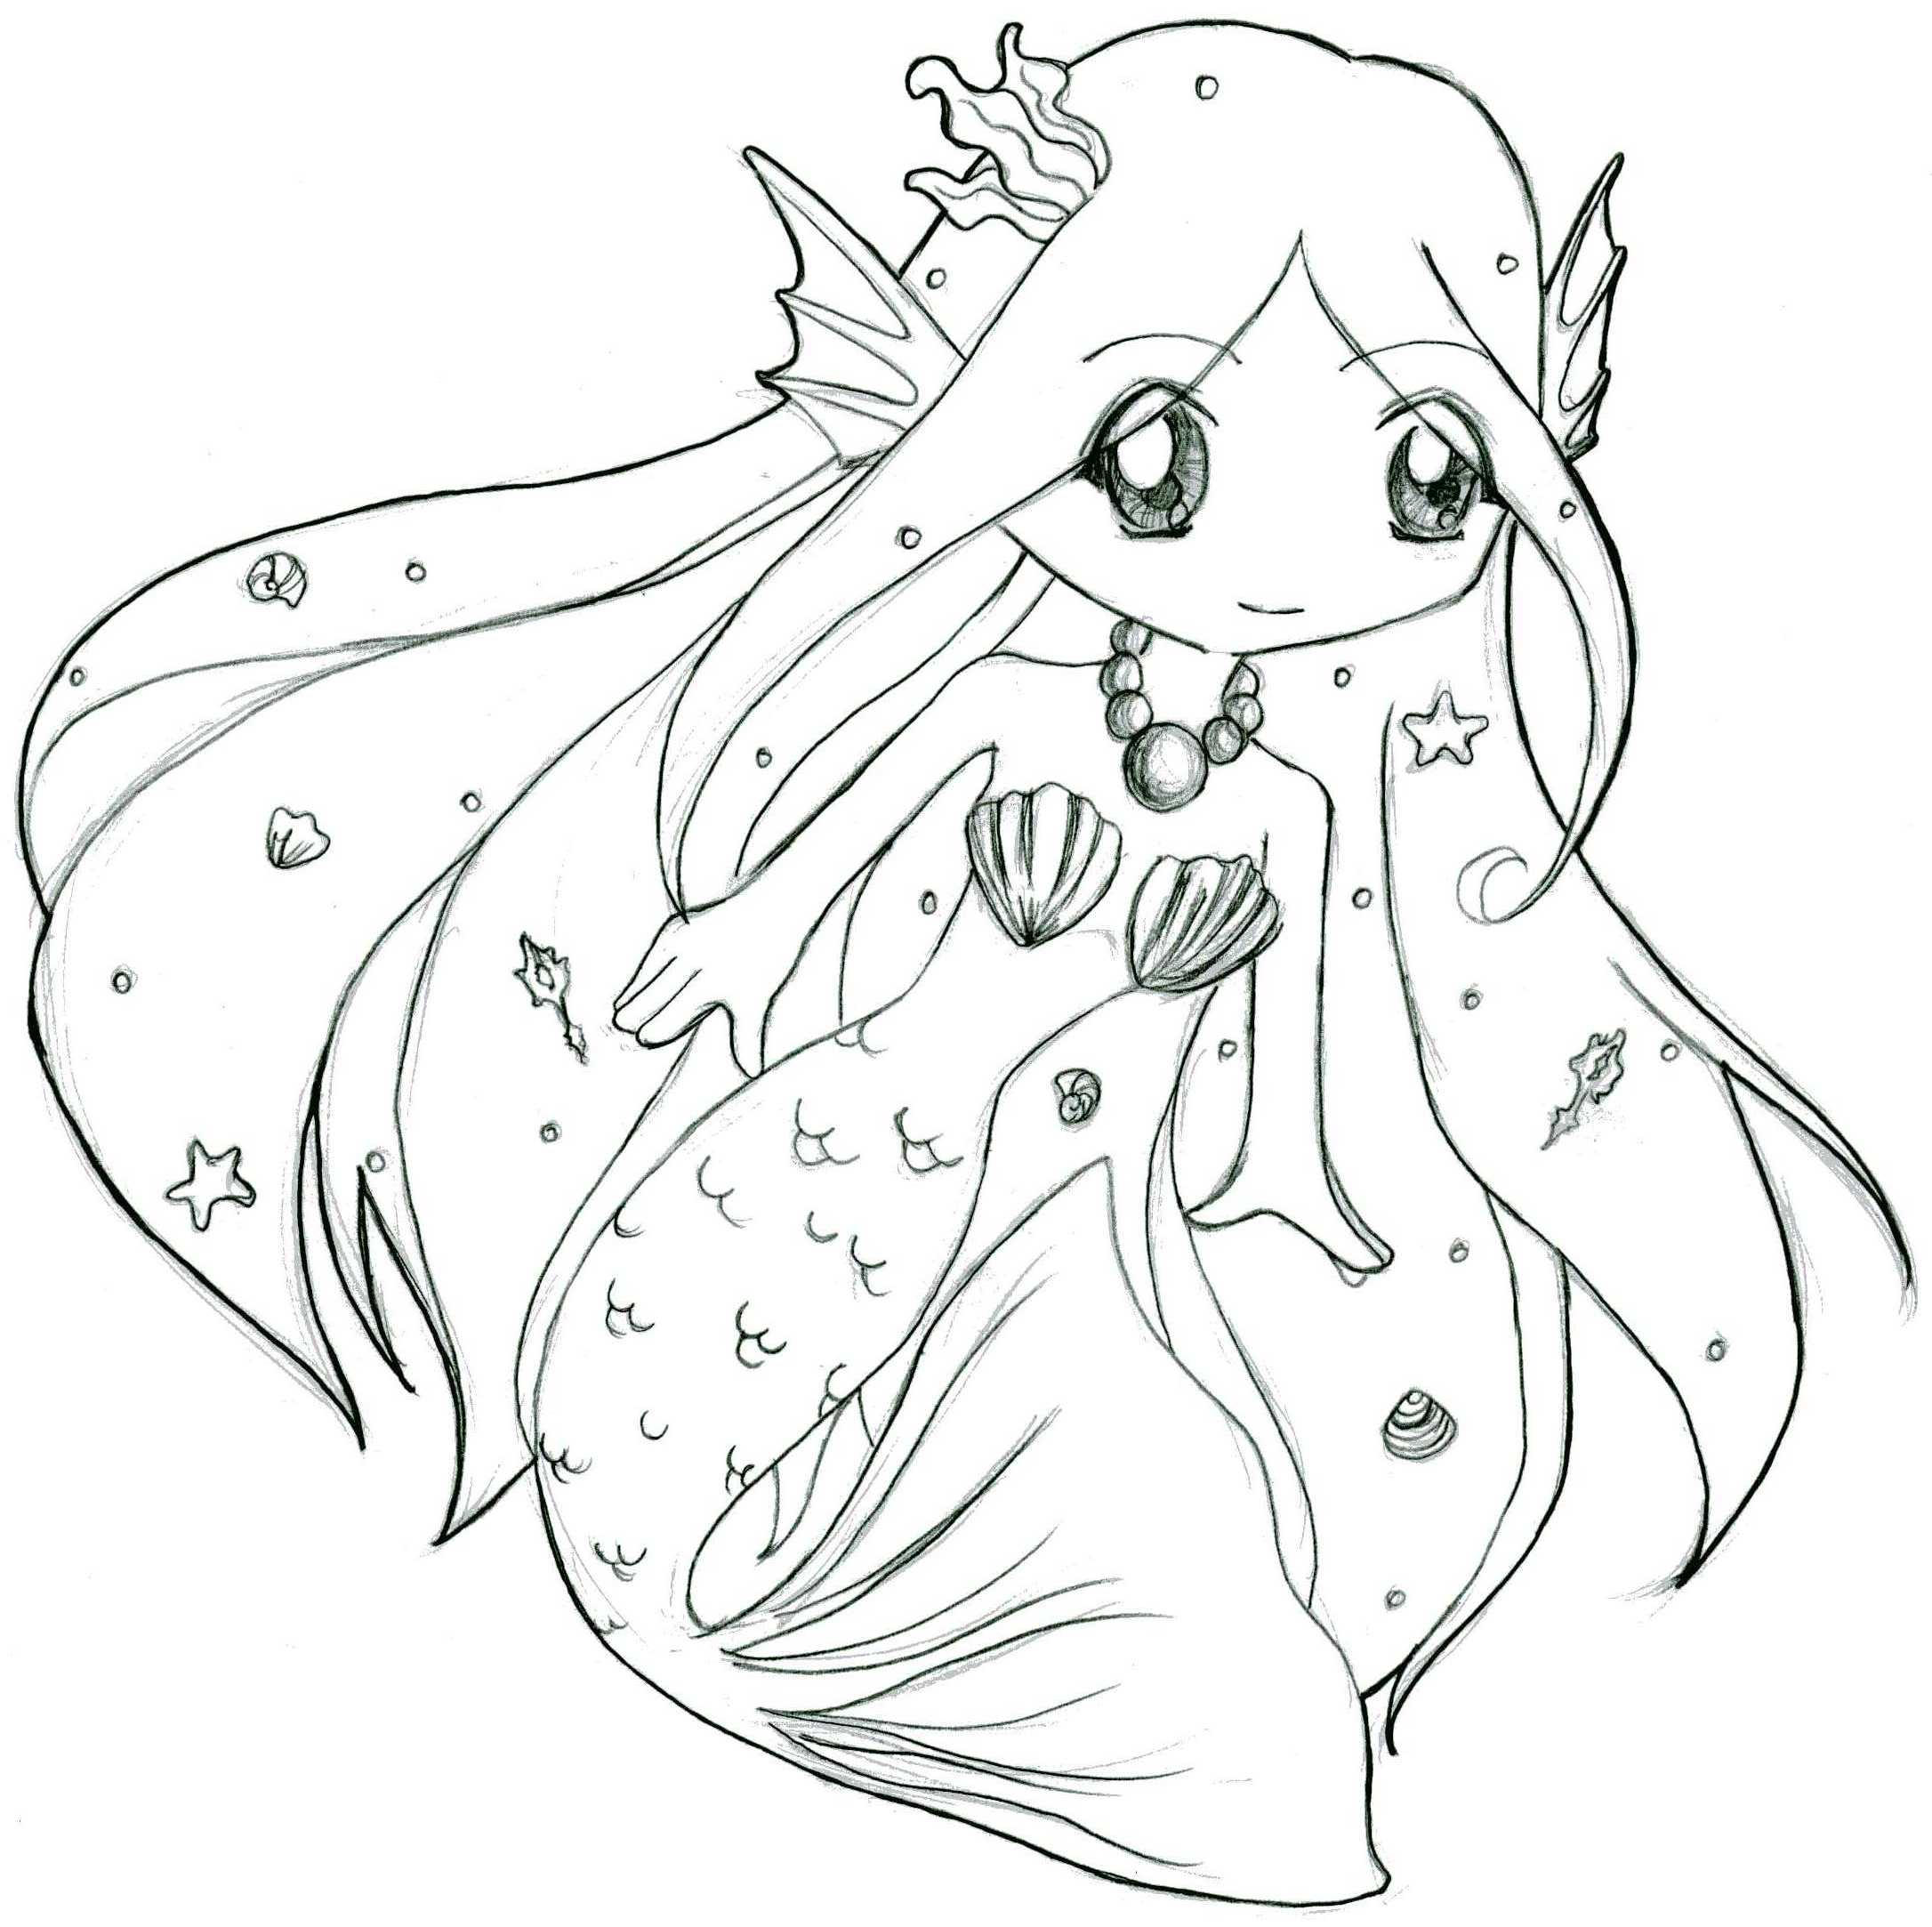 anime mermaids coloring pages - photo#22